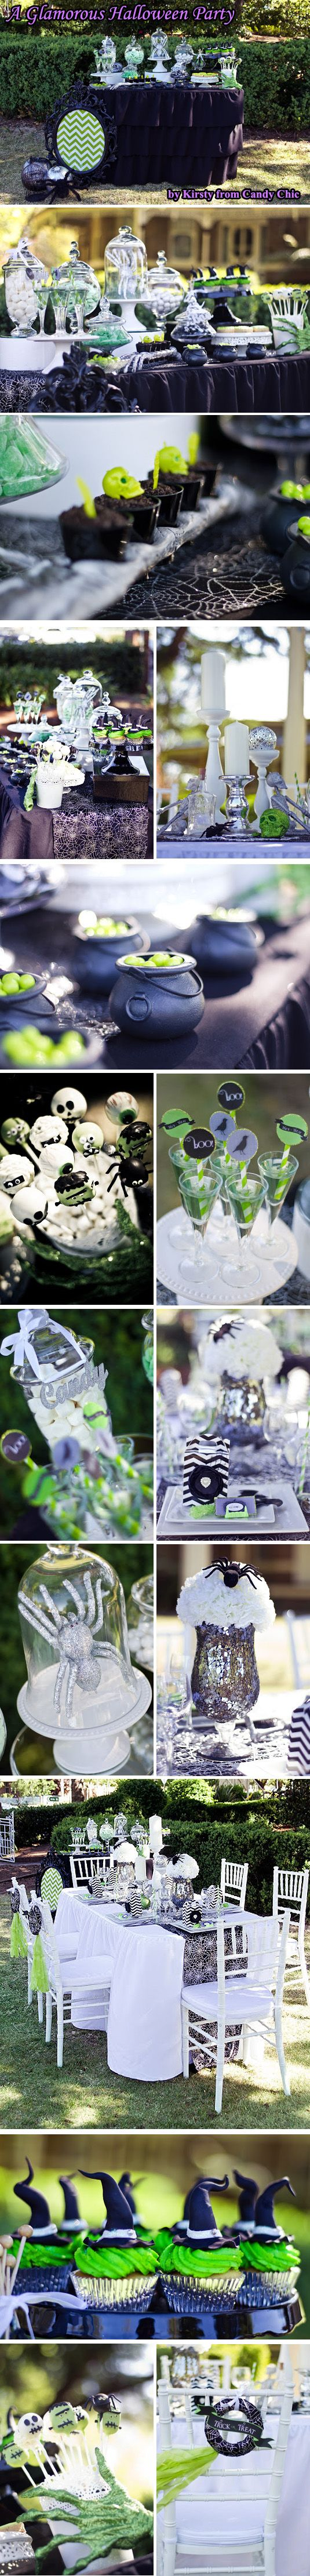 A Glamorous Halloween Party by Kirsty from Candy Chic. Halloween Fashionista Fabulous Witches Theme Party & Decorating Ideas